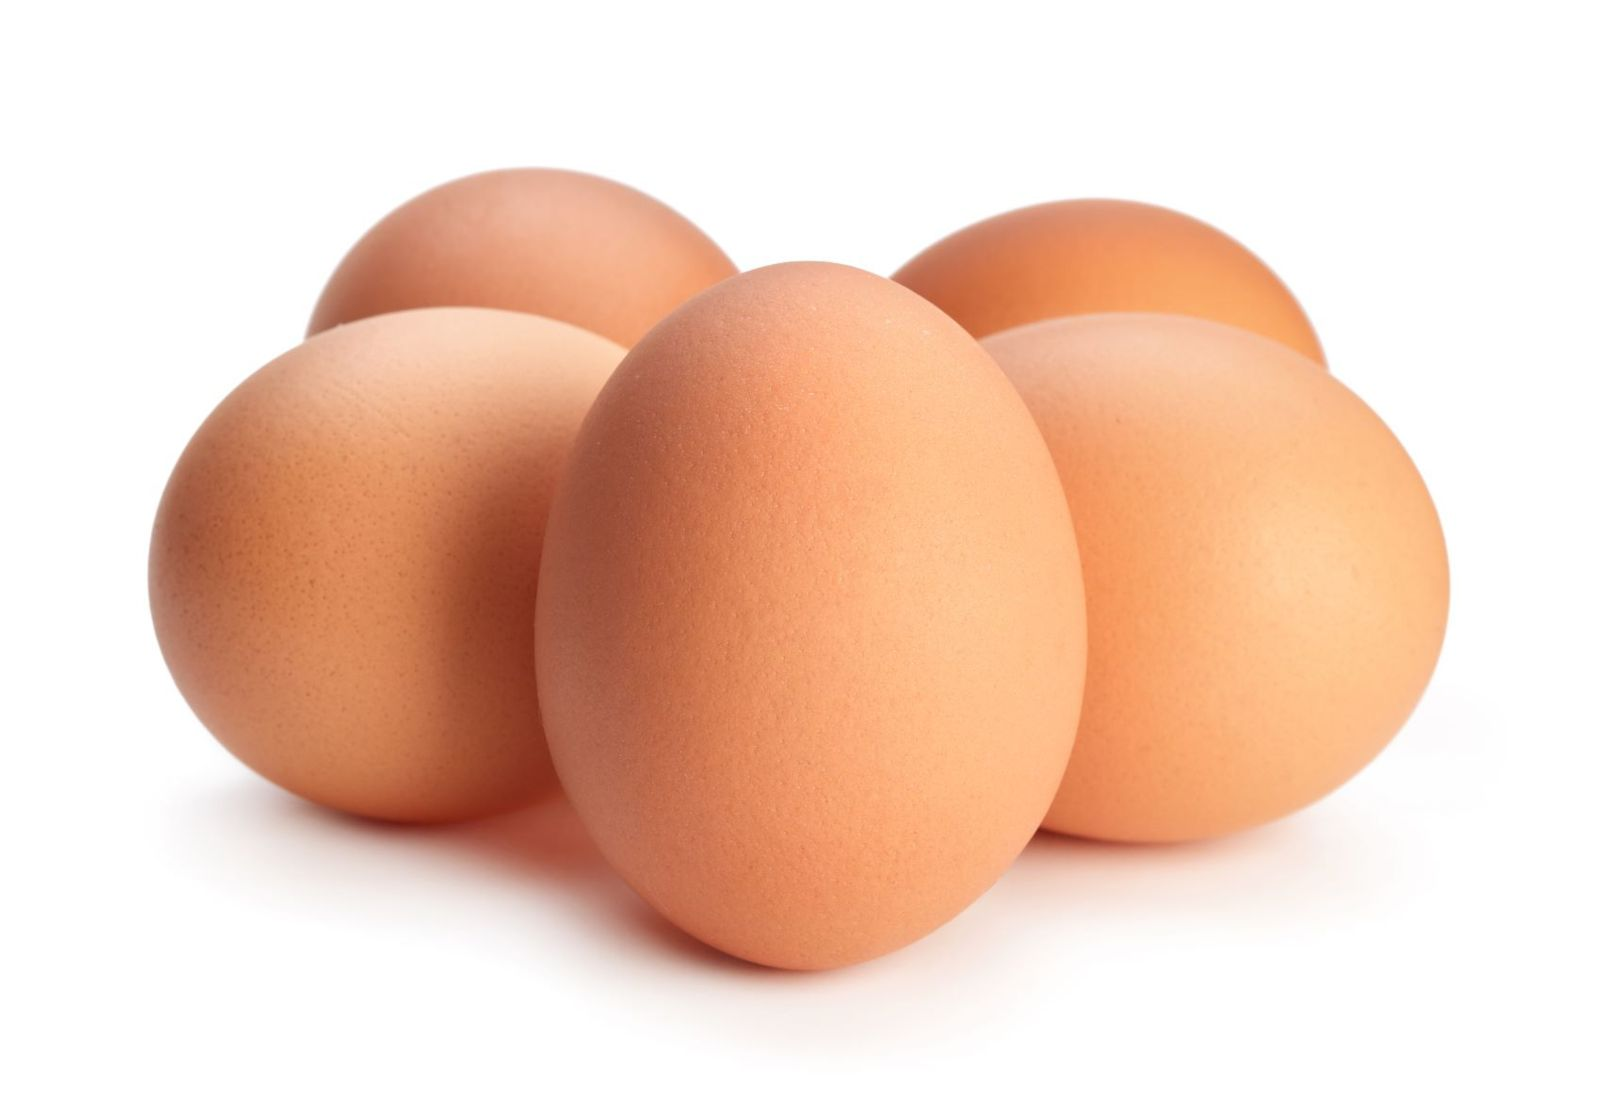 Eggs can be the base of an easy diabetic dinner